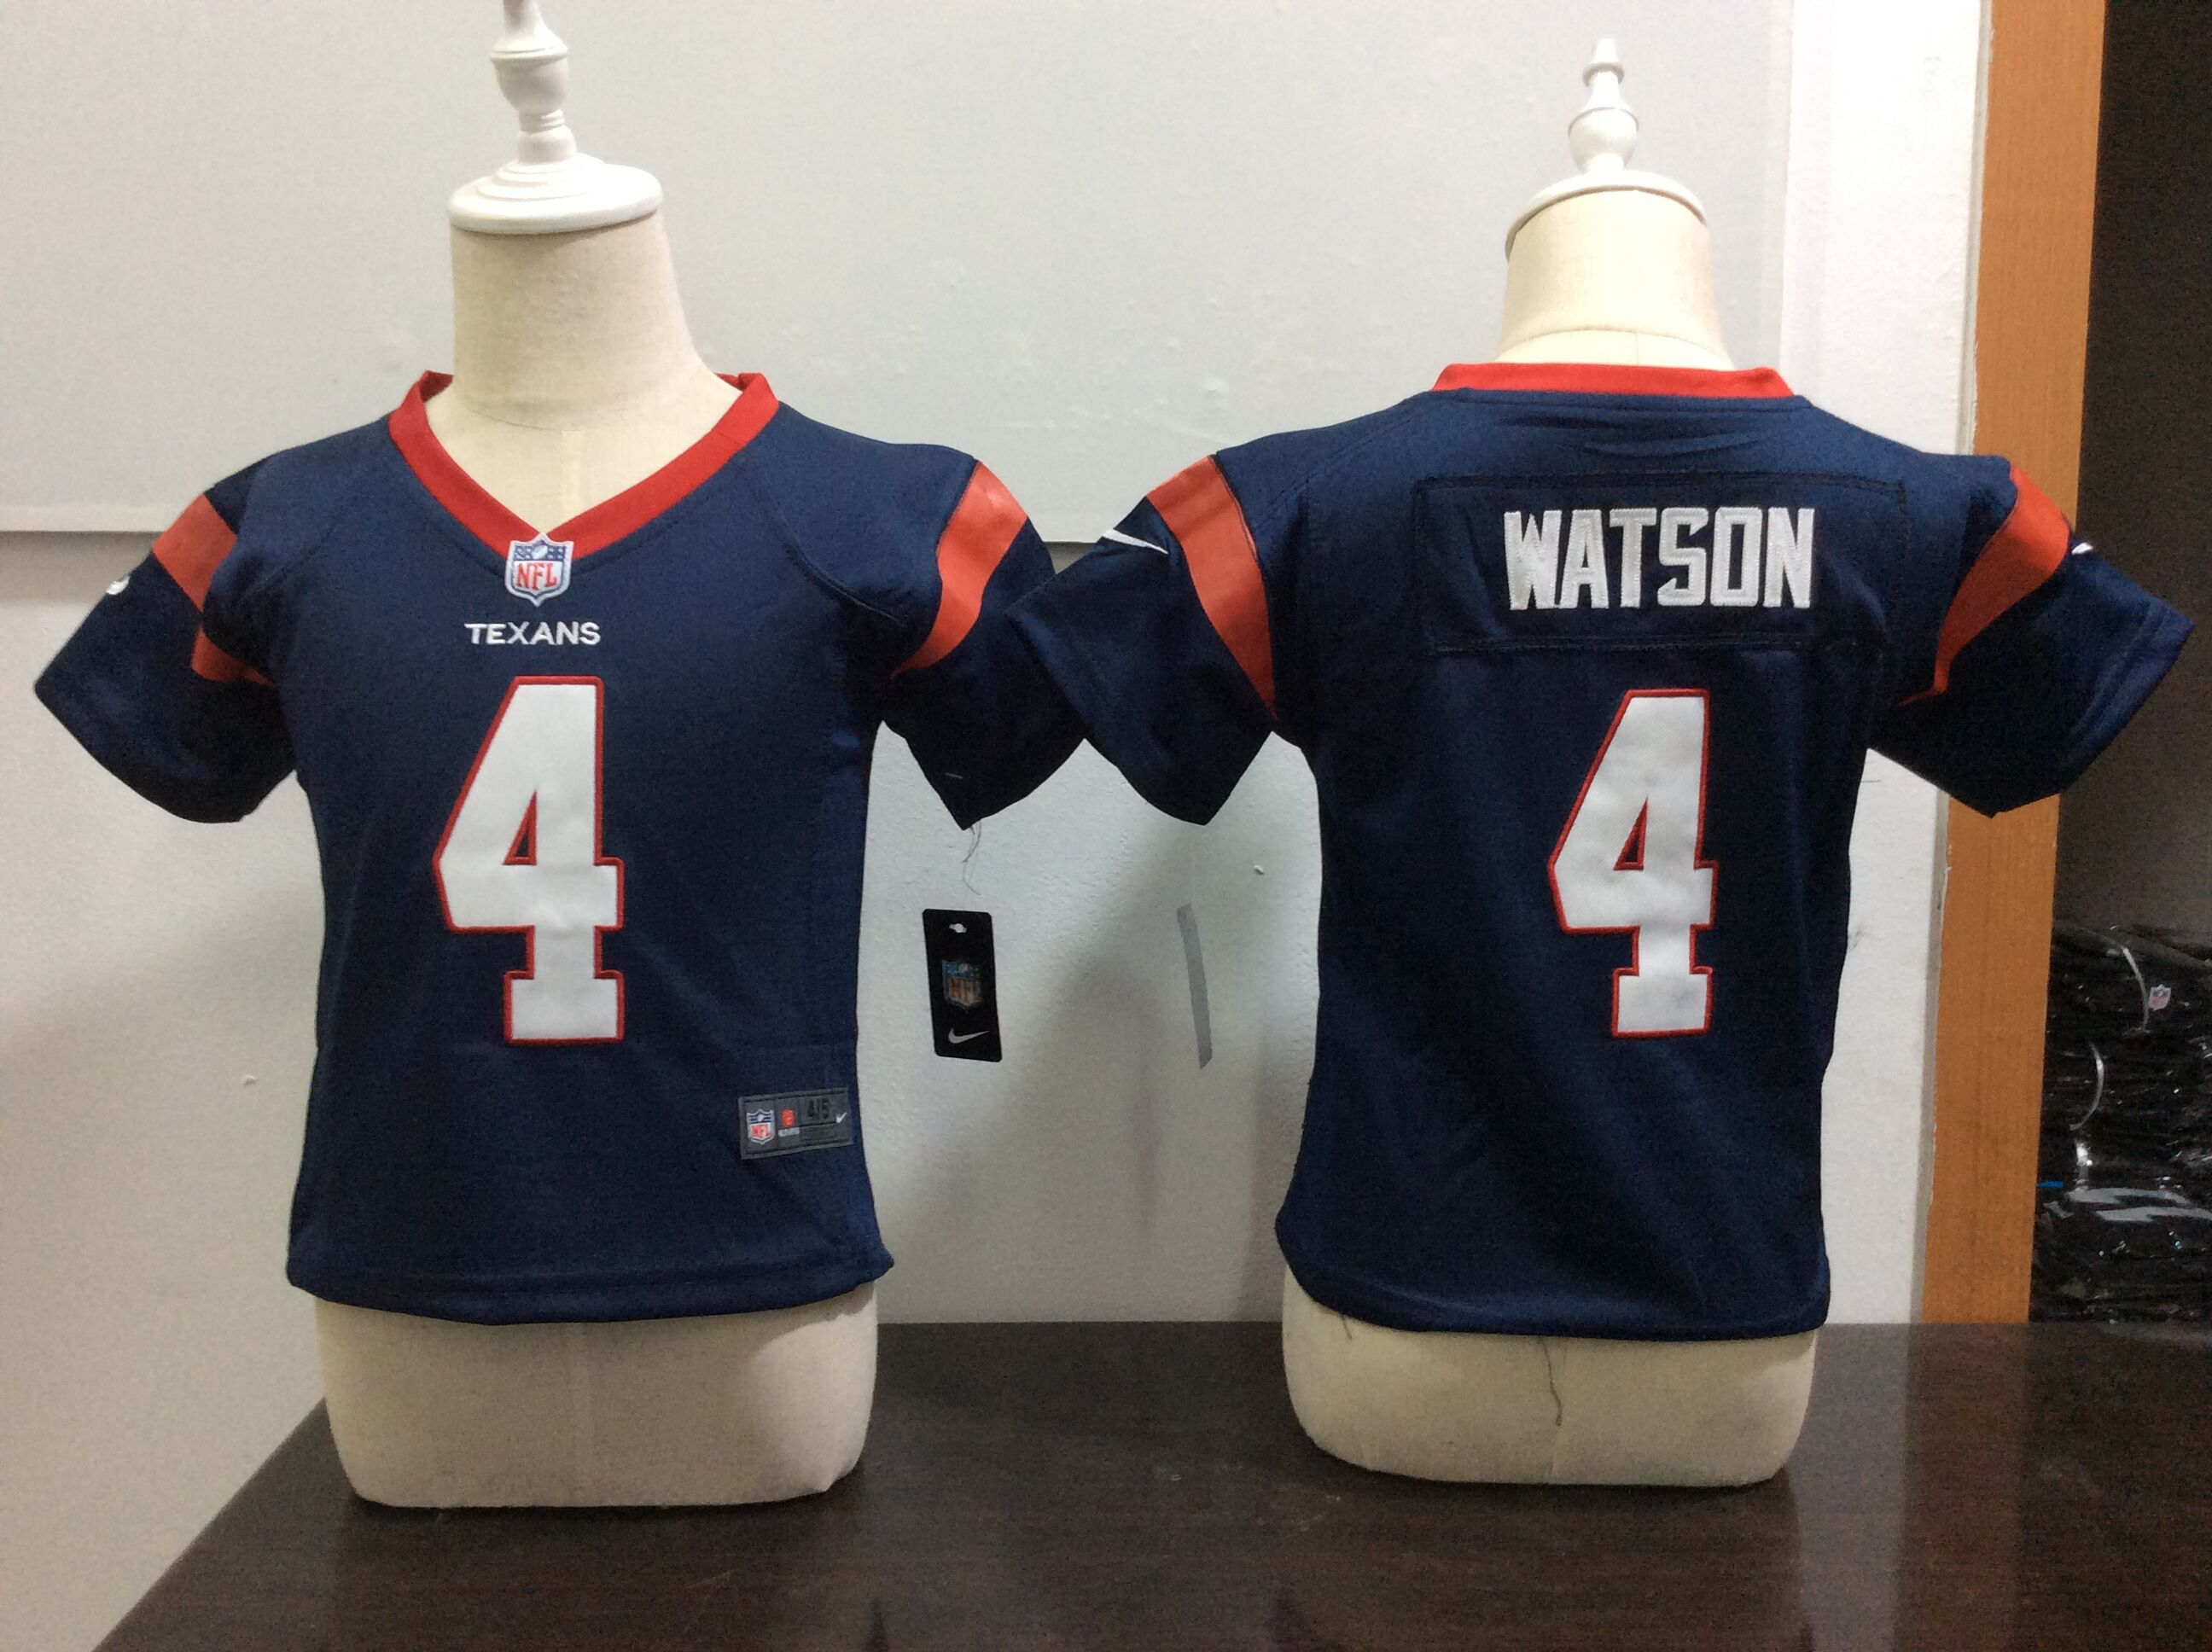 Baby Houston Texans 4 Watson Blue Nike NFL Jerseys